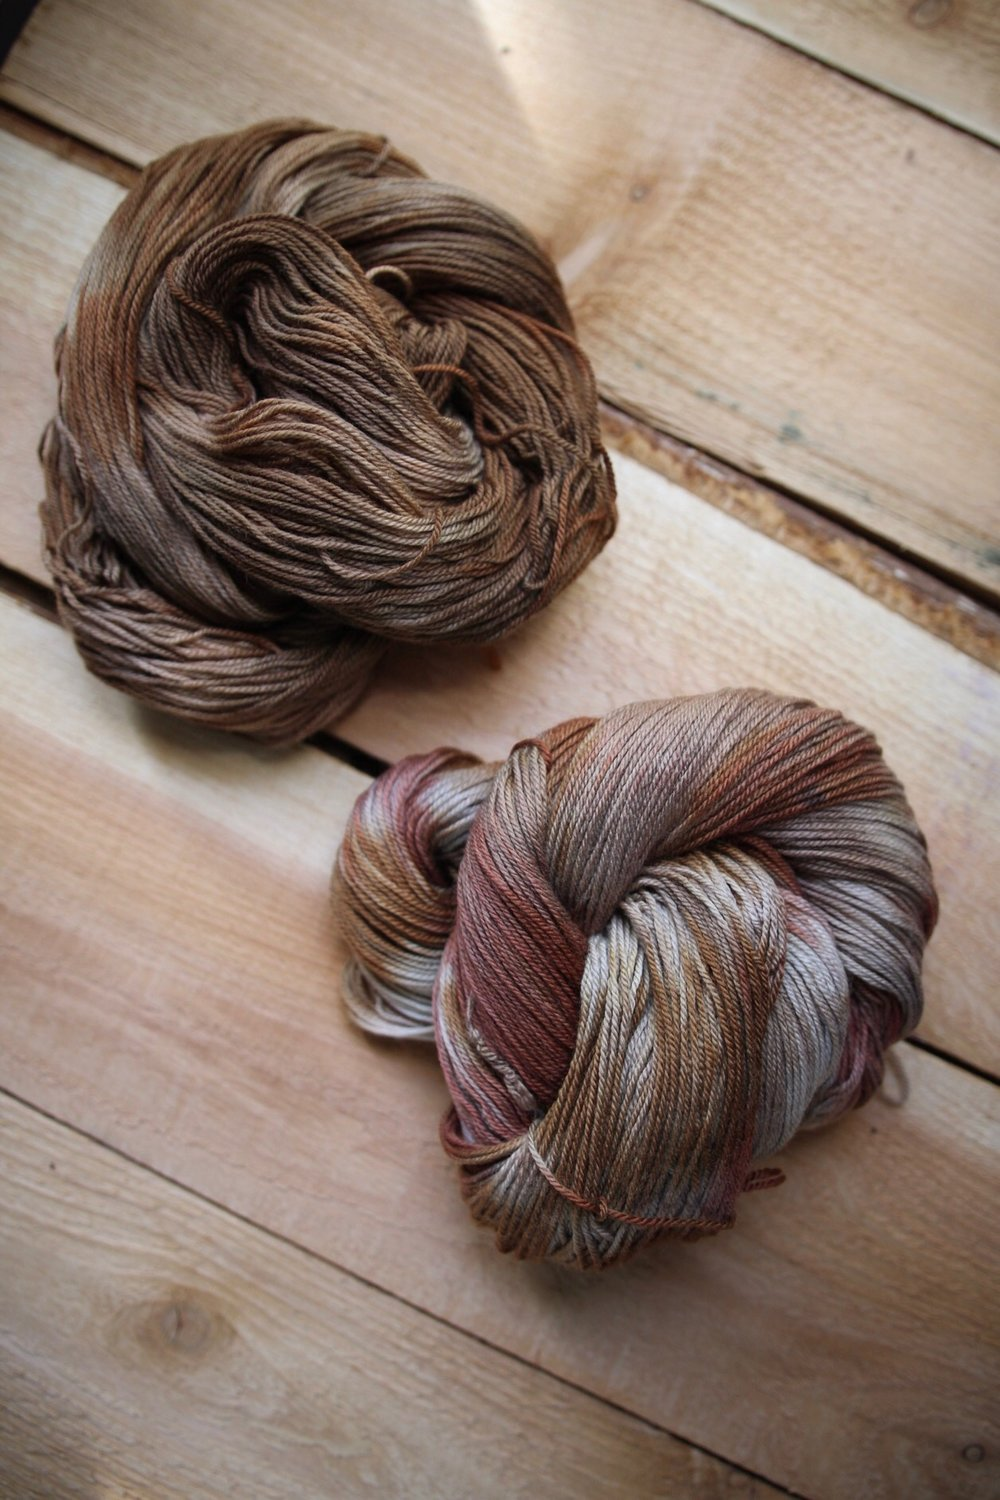 top: iron modified walnut + yellow onion skin (twist-dyed) | bottom: iron modified avocado + yellow onion skin (twist dyed) - both on superwash 80/10/10 base